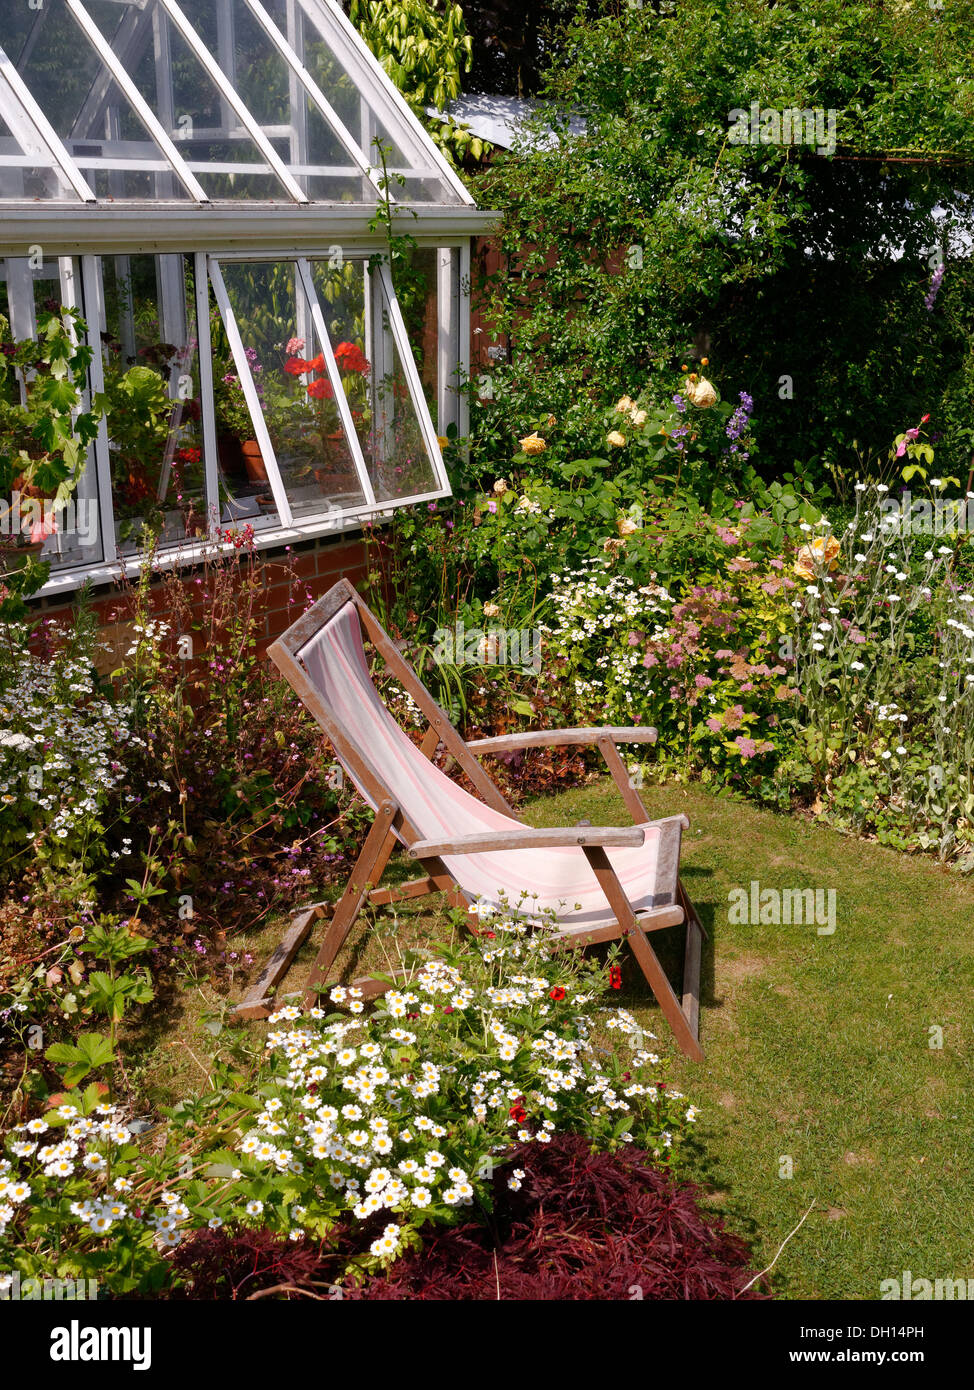 Small lawned garden with borders, deck chair and greenhouse, Barnsdale Gardens, Oakham, Rutland, England, UK. - Stock Image